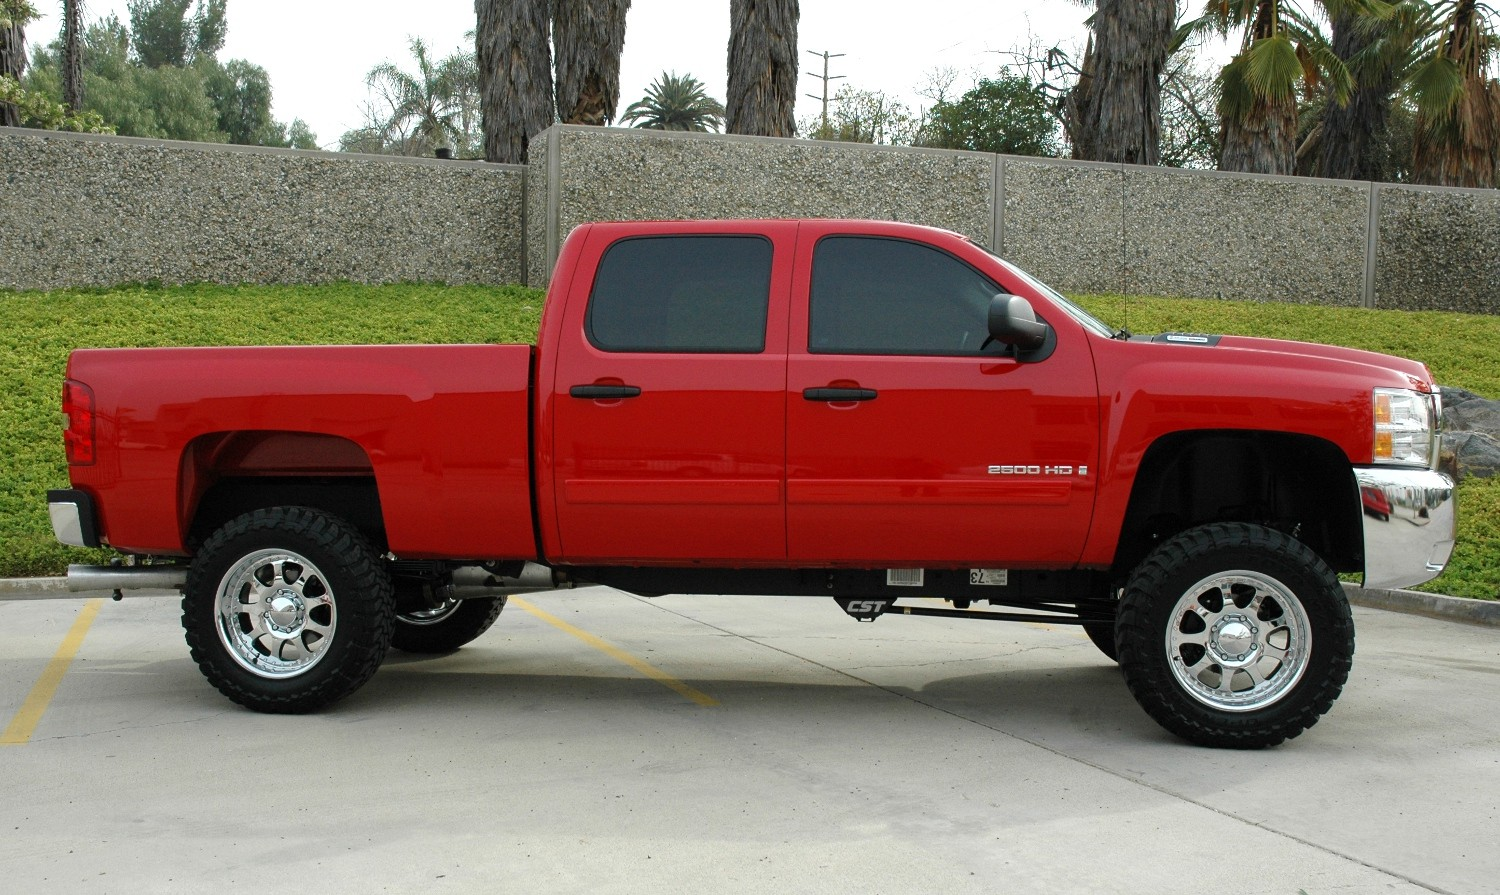 6 Inch Lift Kit For Chevy 1500 4wd >> Csk G6 1 01 10 Chevy Gmc Hd 2500 3500 2wd 4wd 6 8 Stage 1 Suspension System